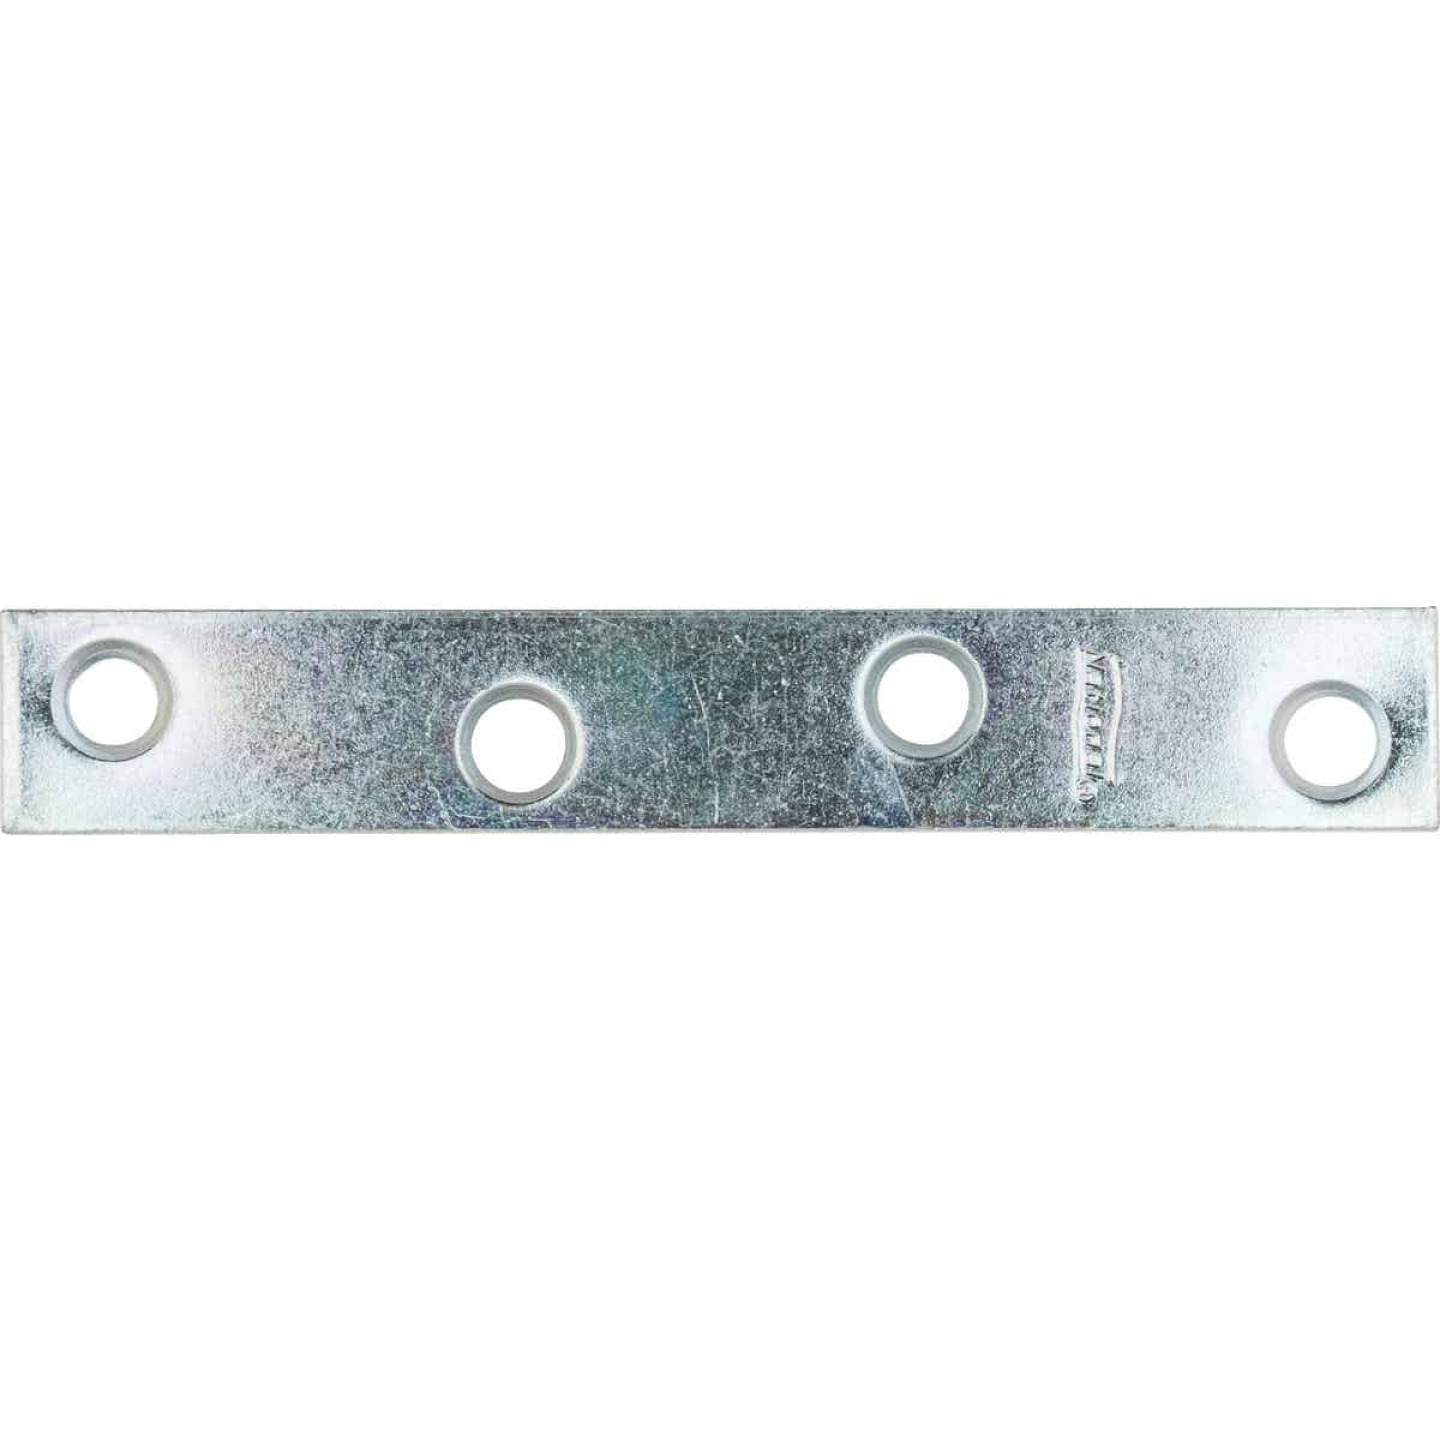 National Catalog 118 4 In. x 5/8 In. Zinc Steel Mending Brace Image 1